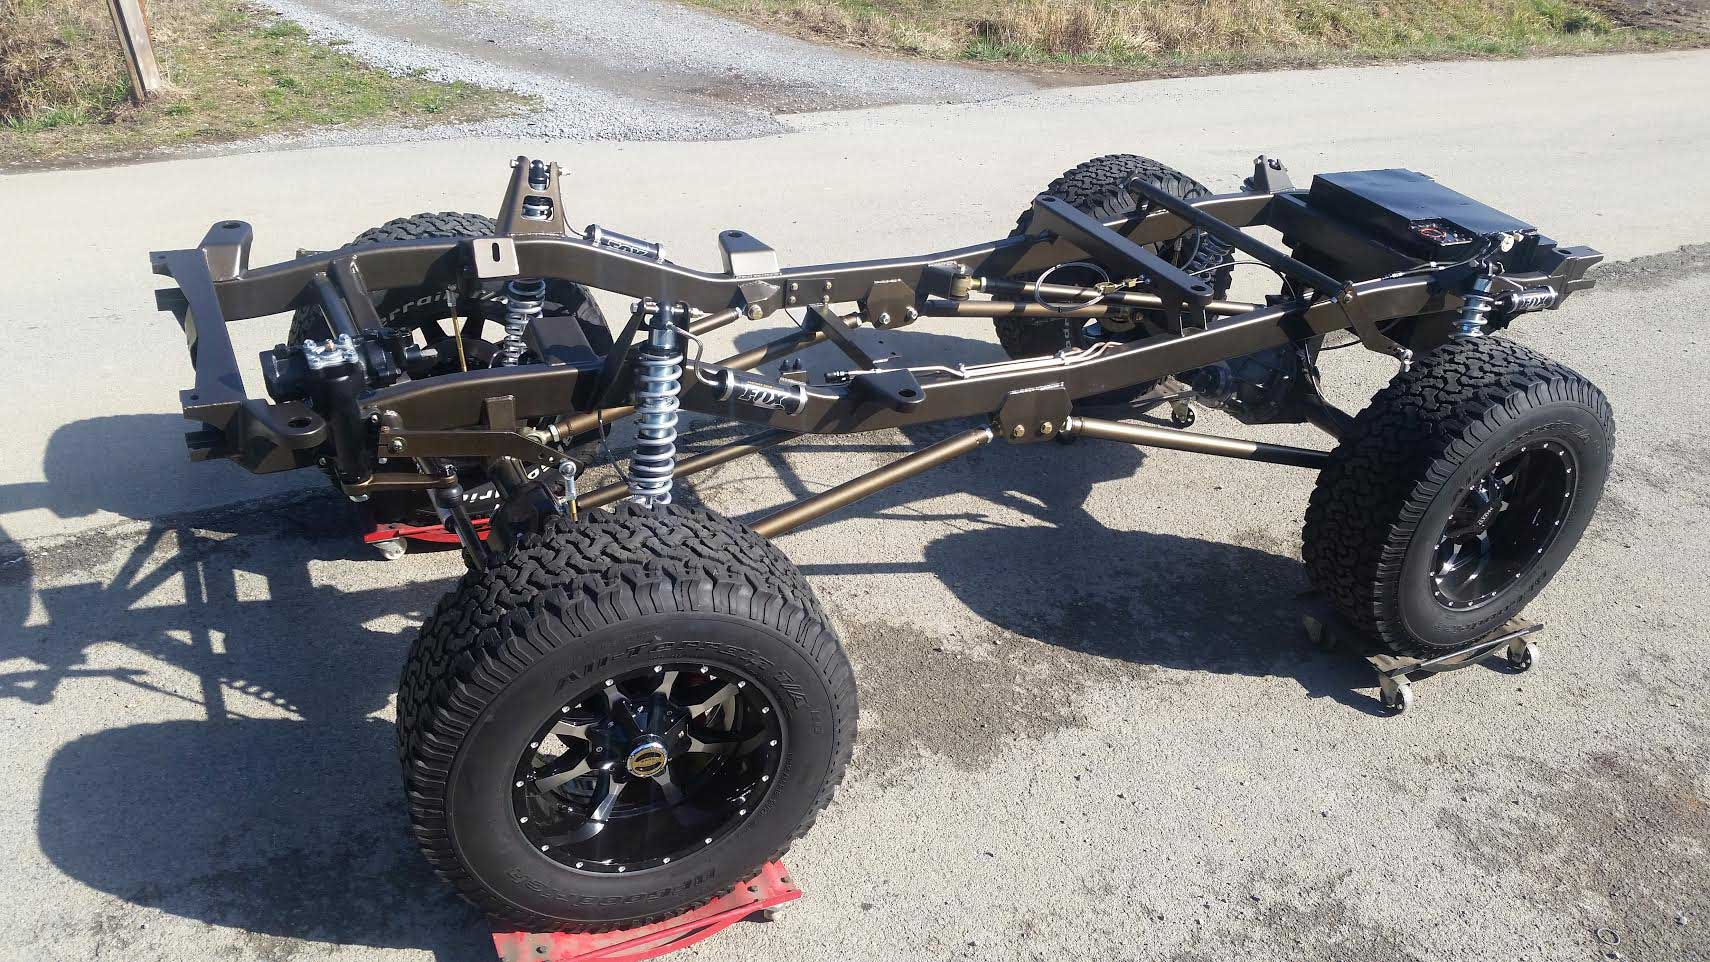 Krawlers Edge Rolling Chassis for an Early Bronco